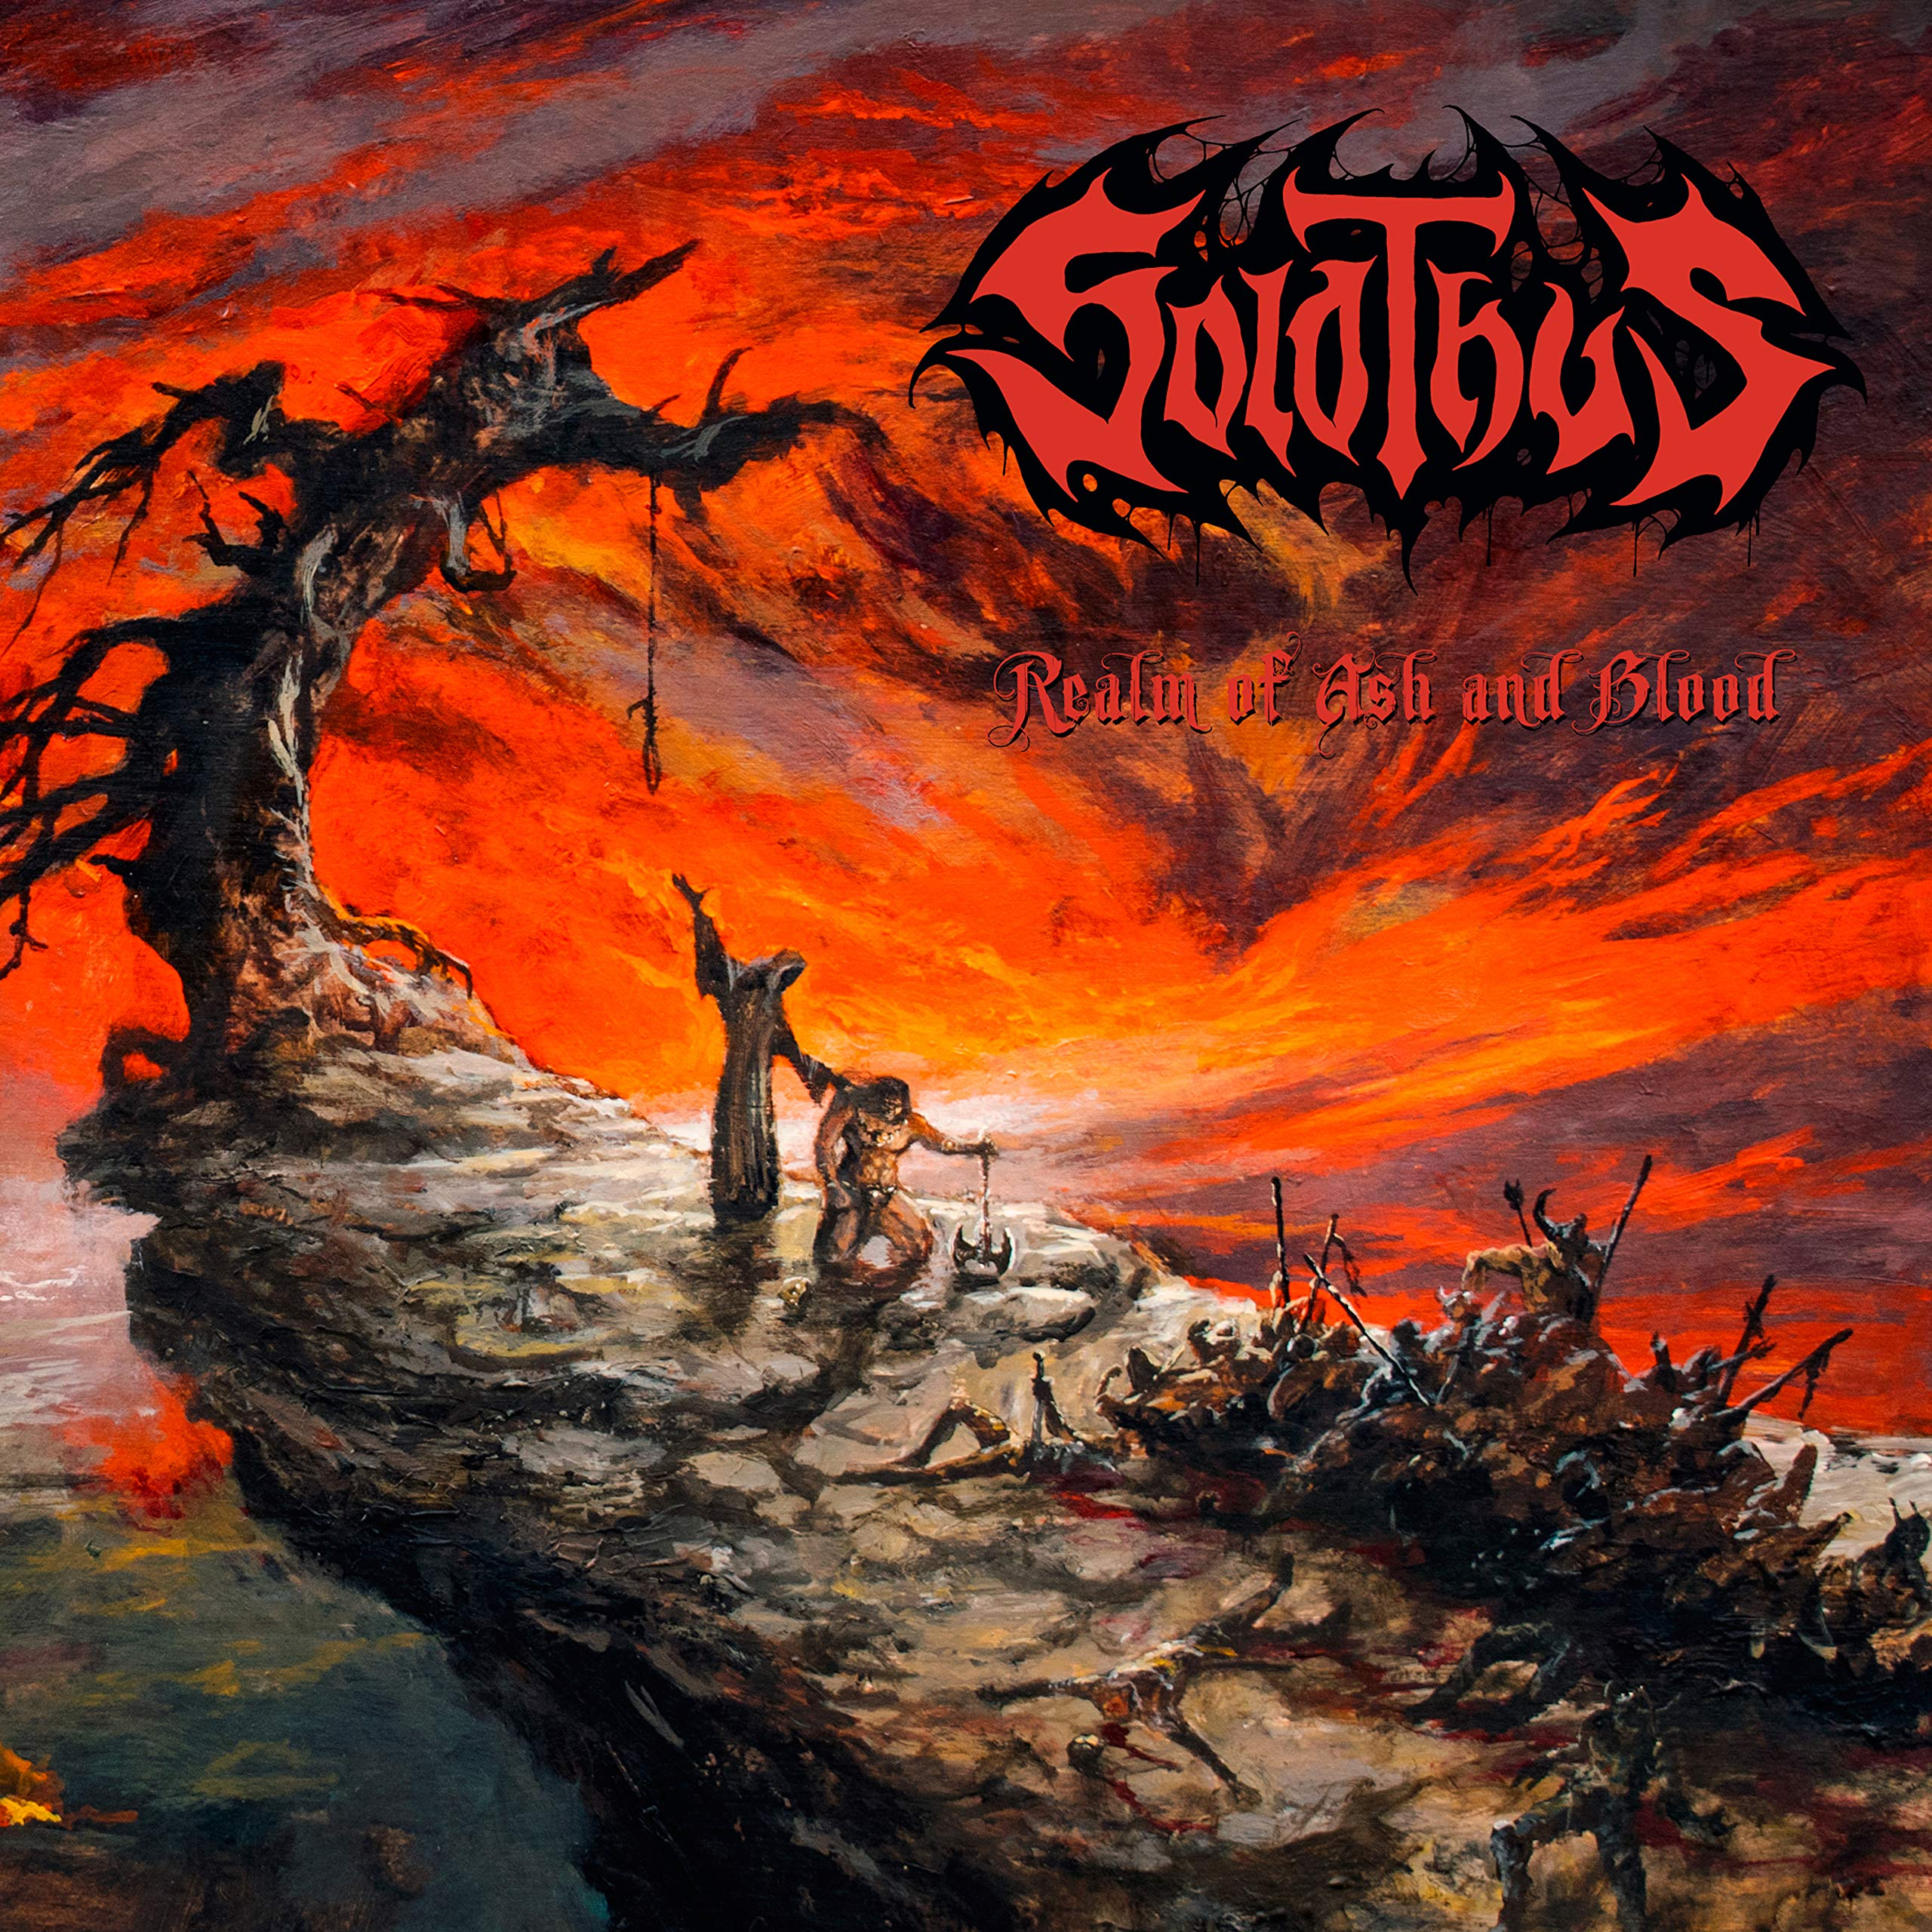 Solothus - Realm of Ash and Blood (2020) [FLAC] Download